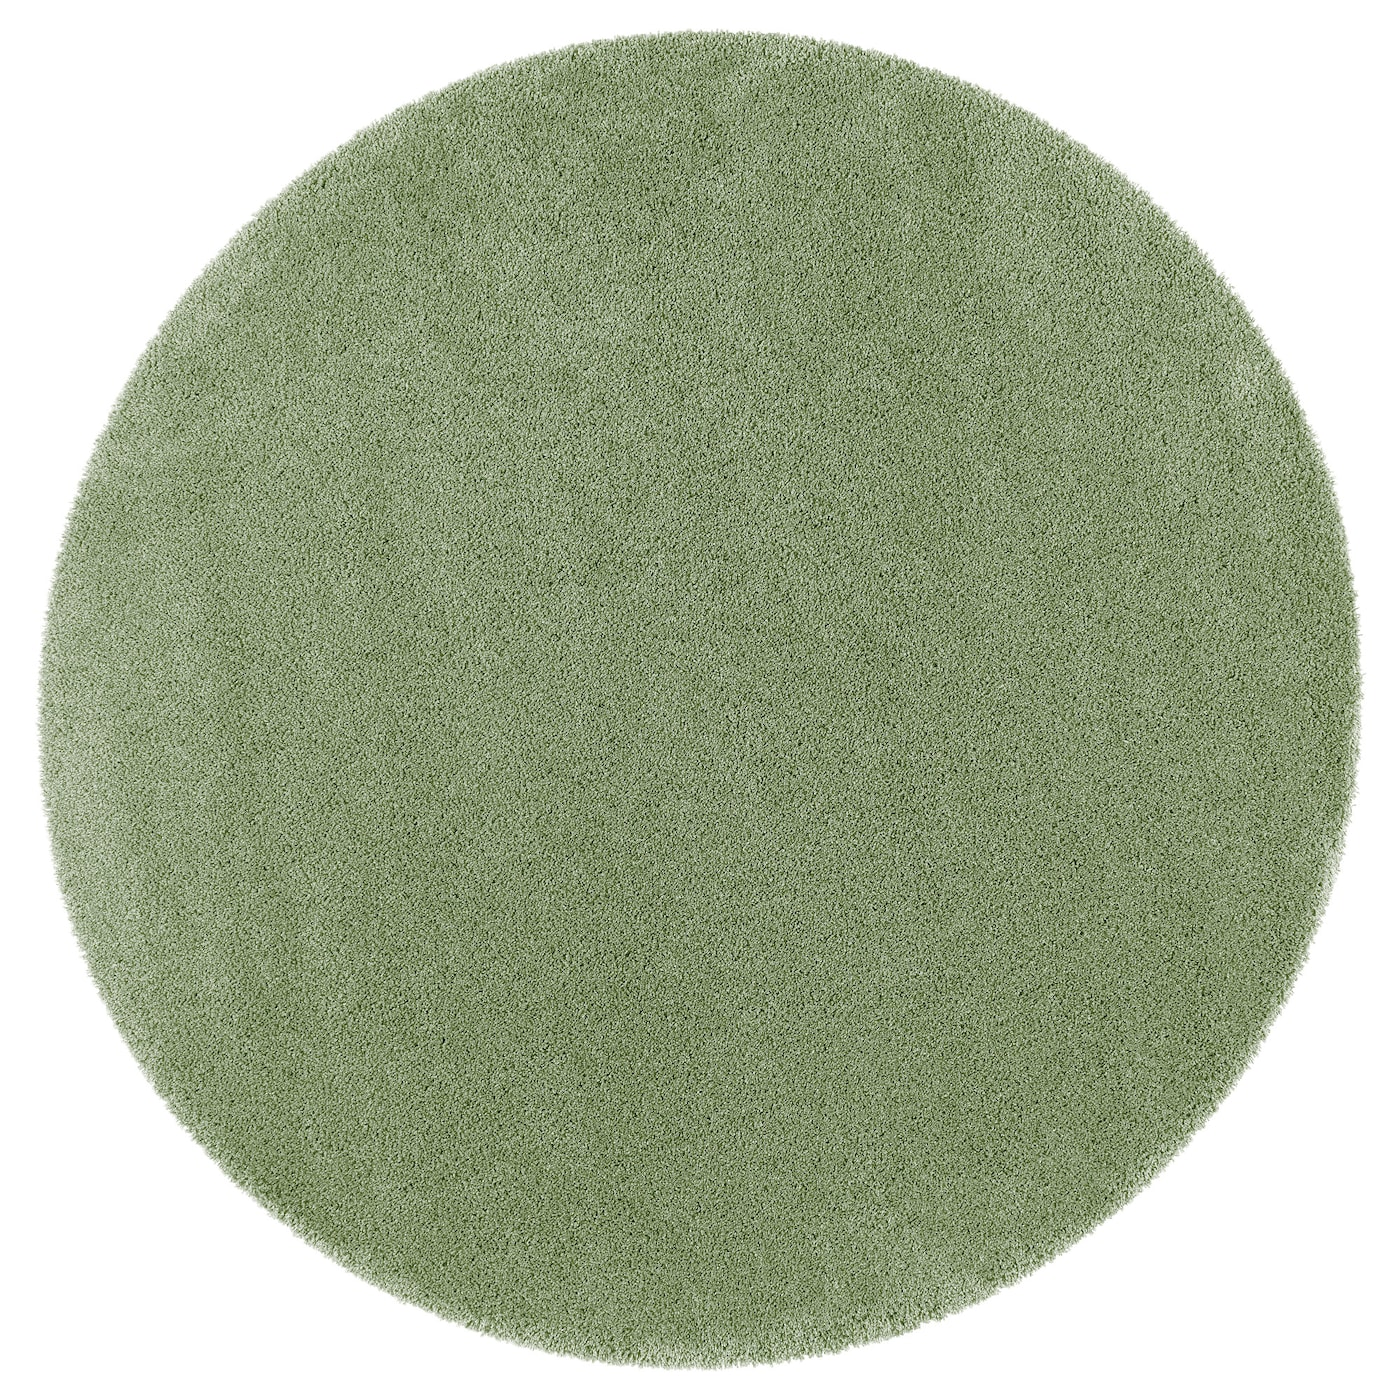 ÅDUM Rug, High Pile Light Green 195 Cm